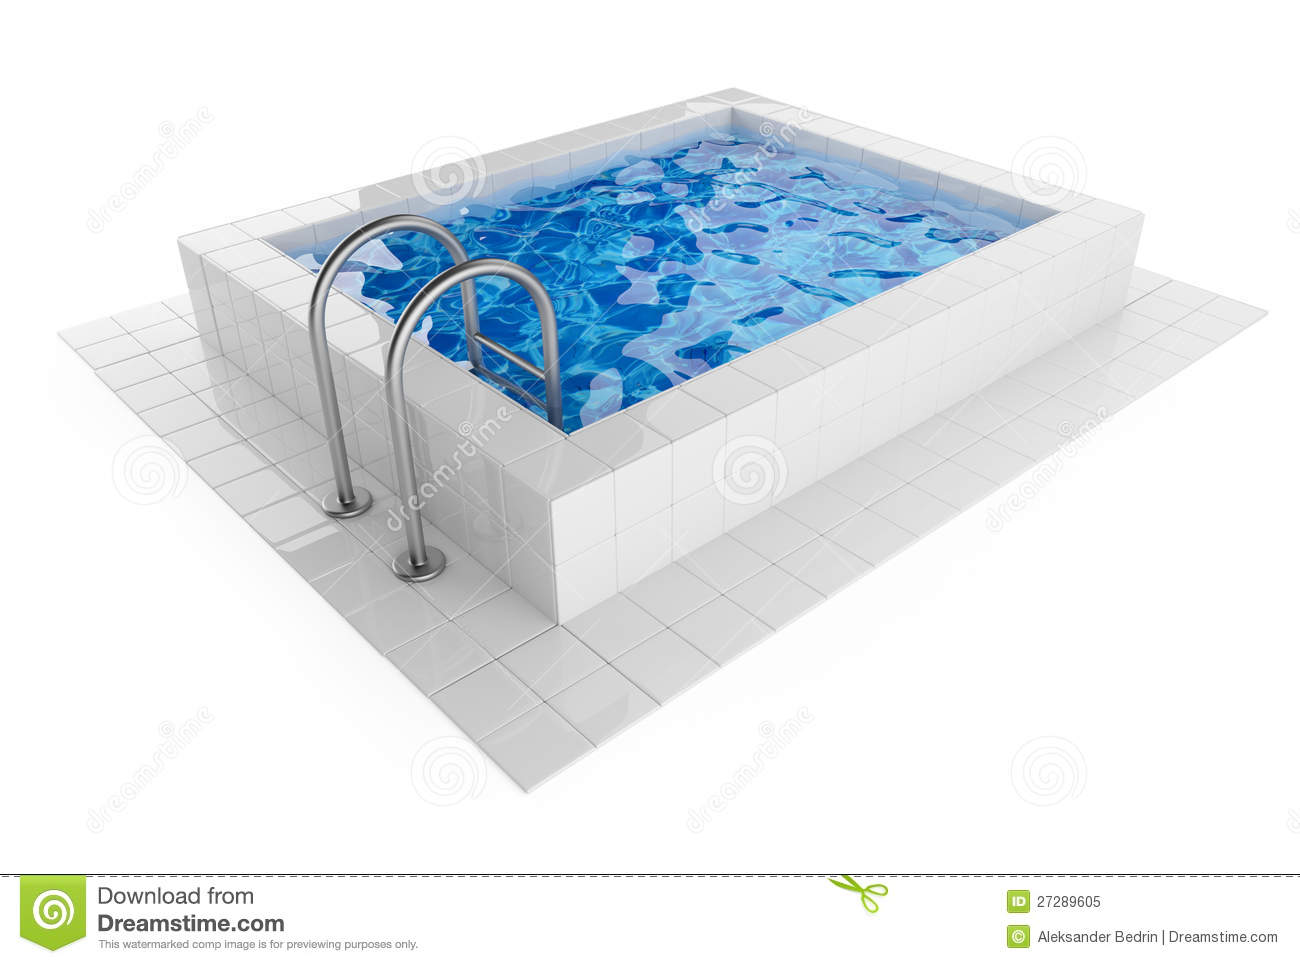 Swimming pool 3d illustration on white stock illustration illustration of care design 27289605 for Swimming pool 3d model free download